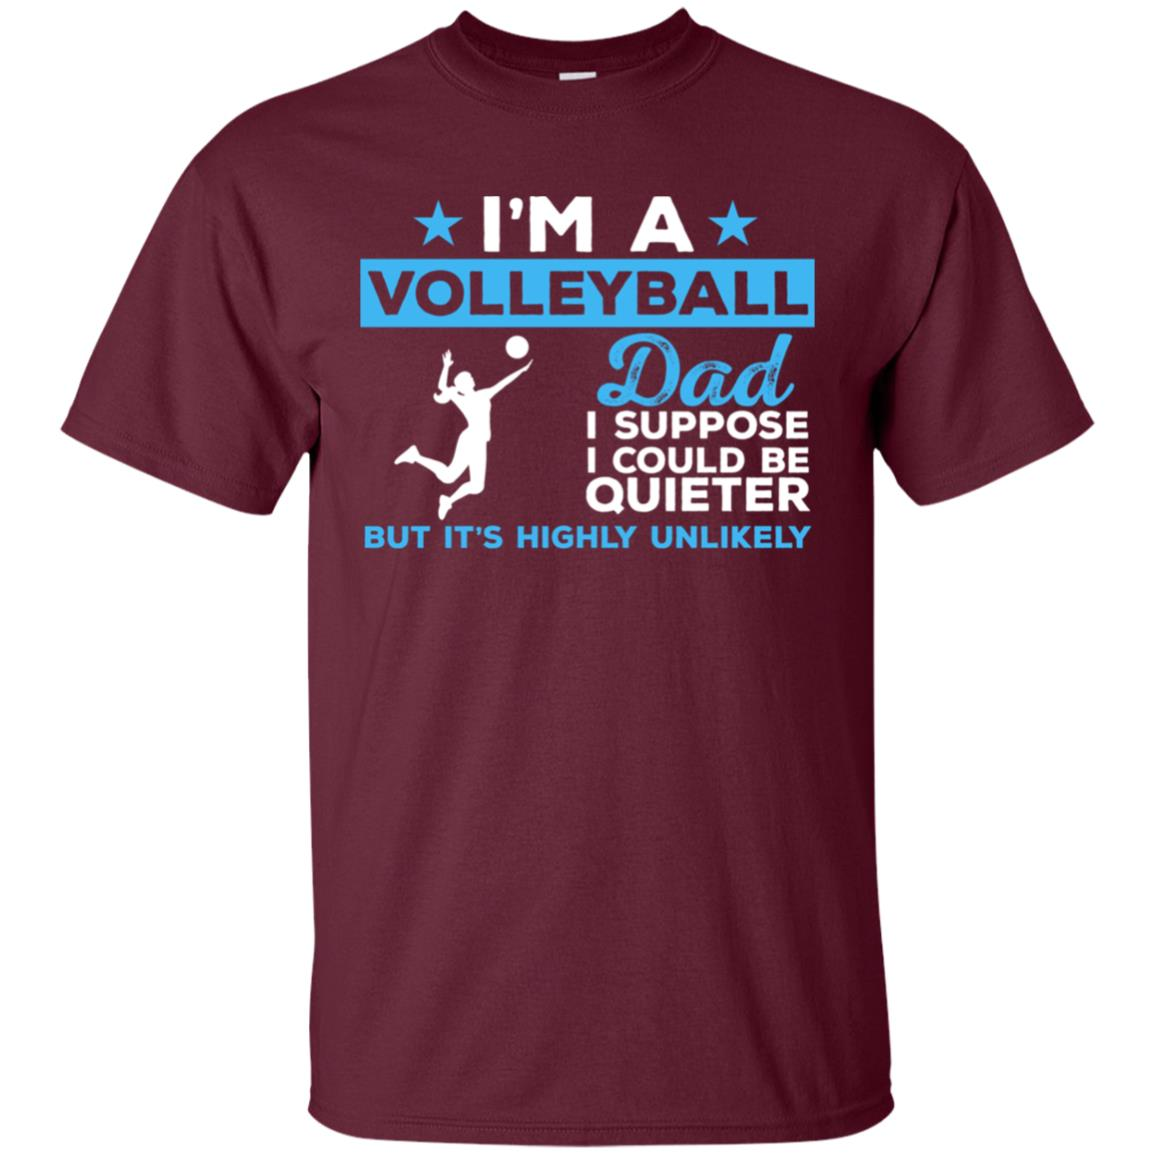 Funny Volleyball Dad Gift Unisex Short Sleeve